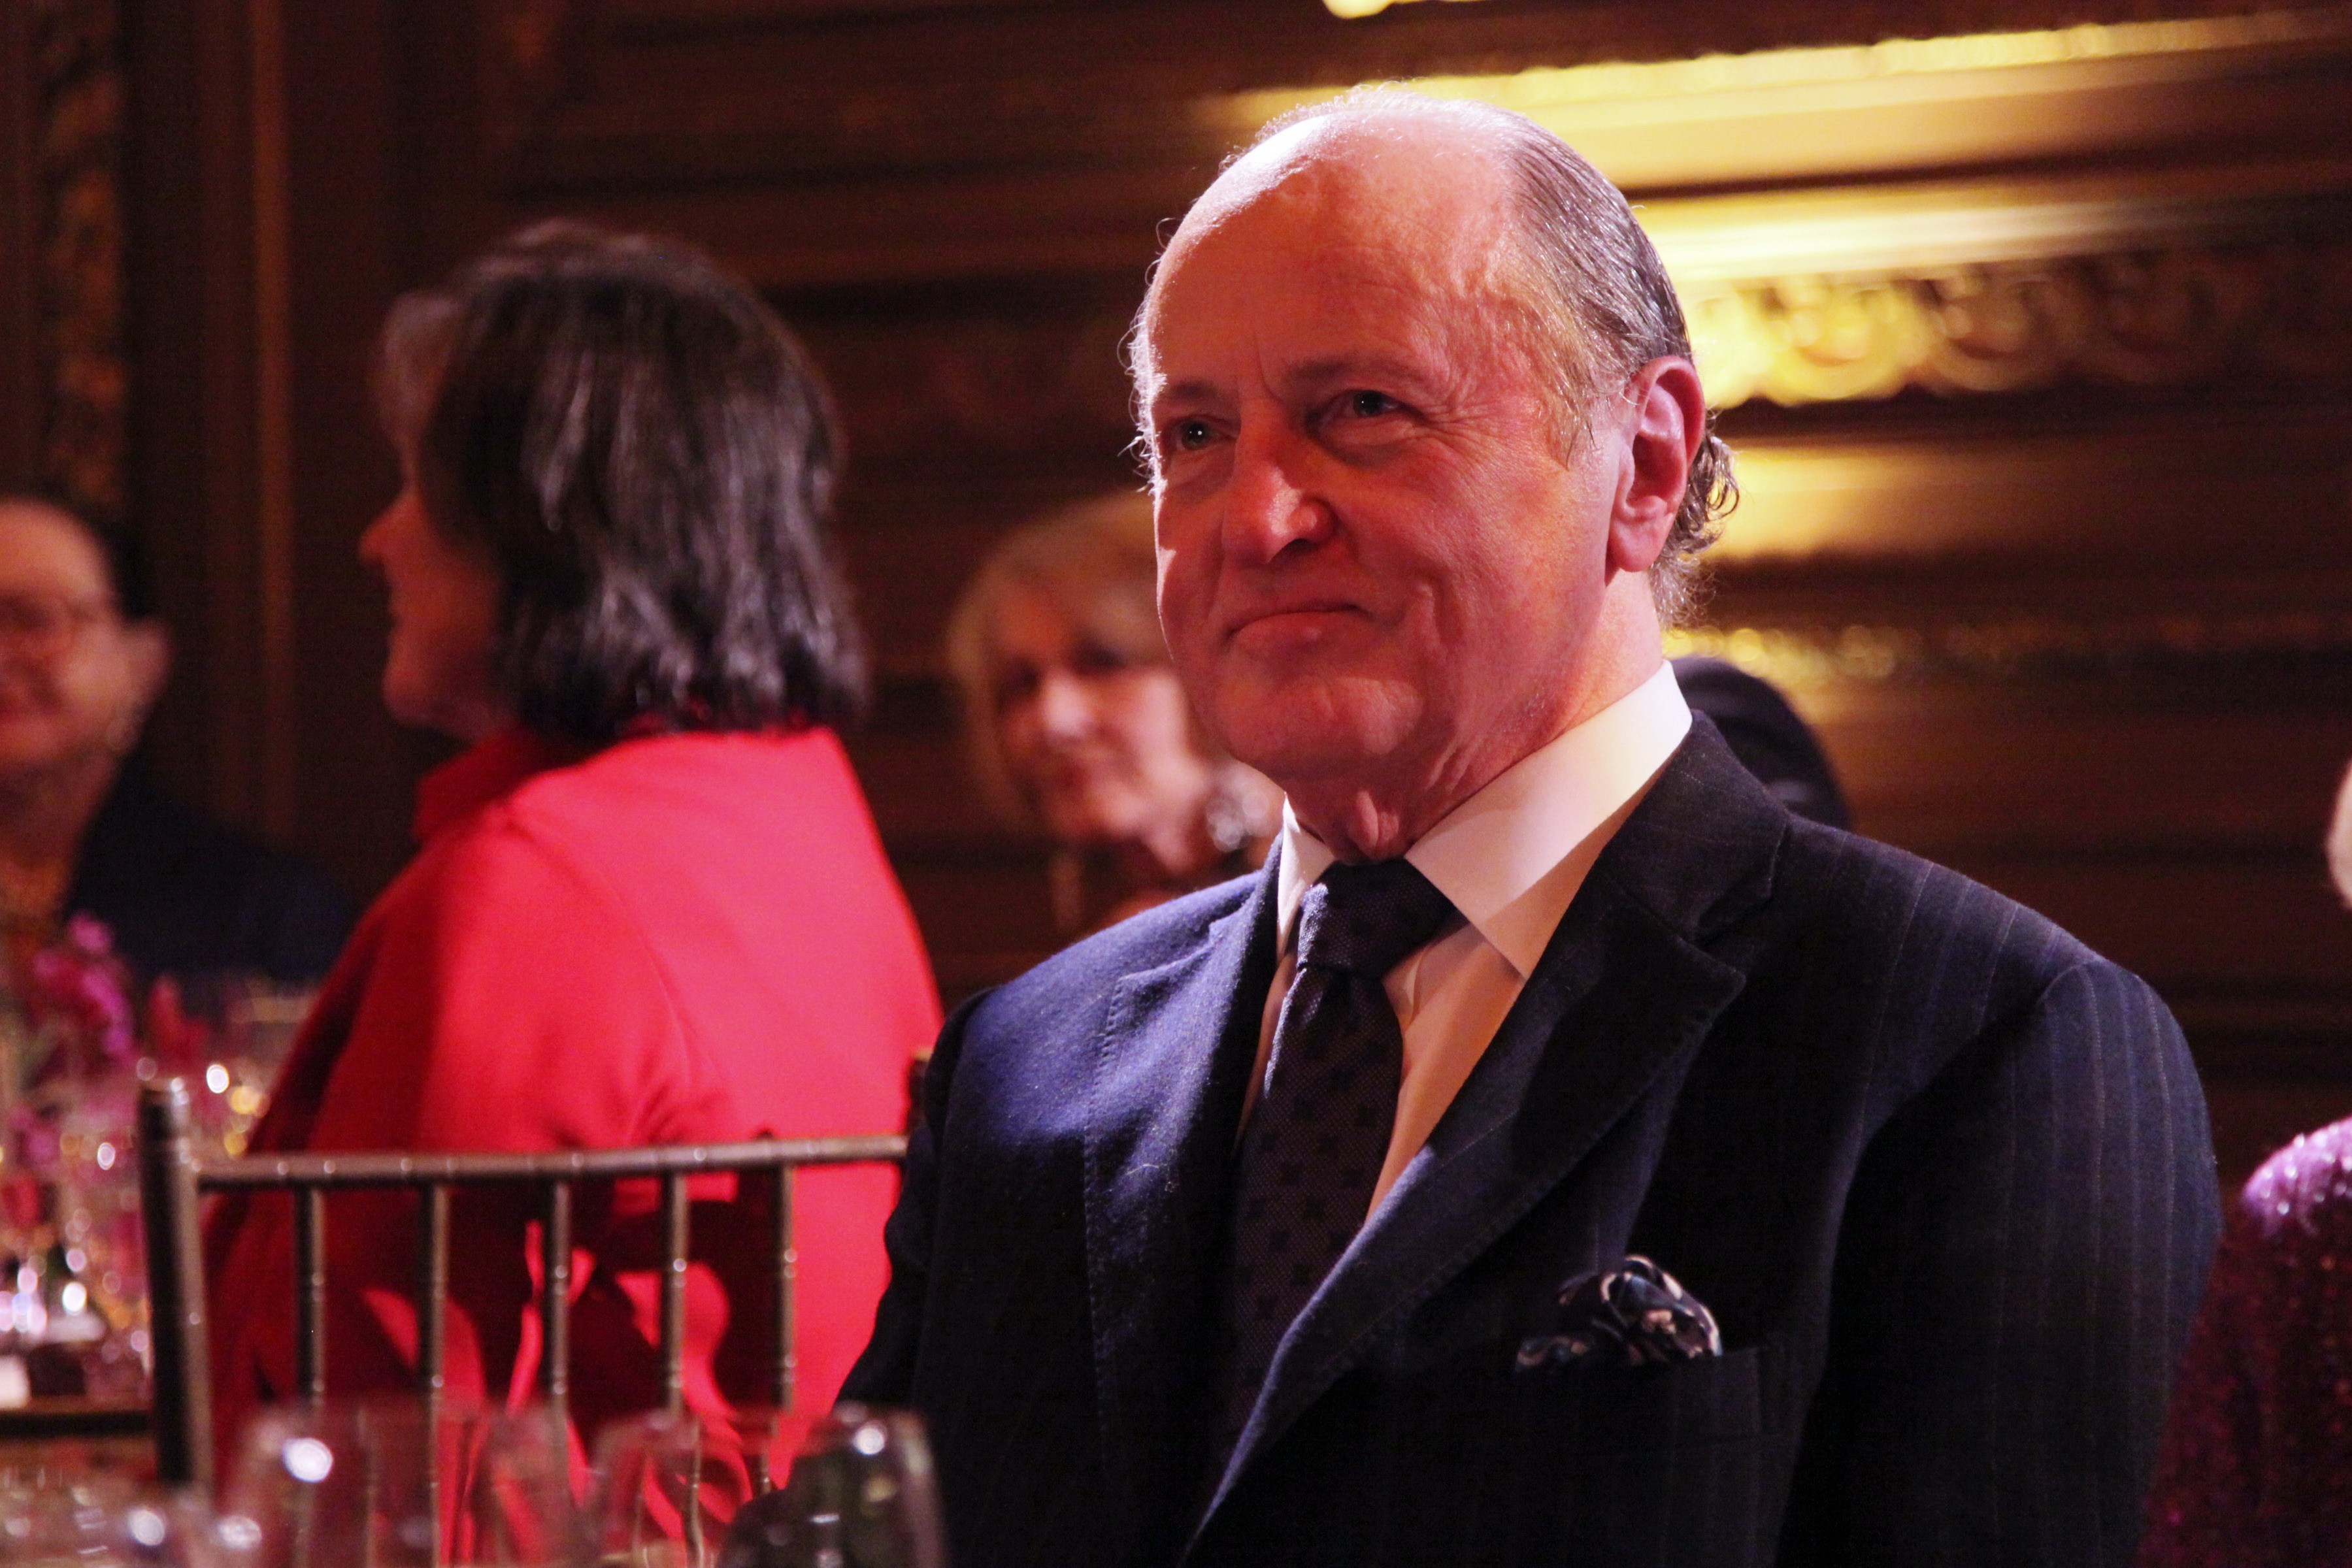 NY School of Interior Design Benefit Gala honored Mario Buatta